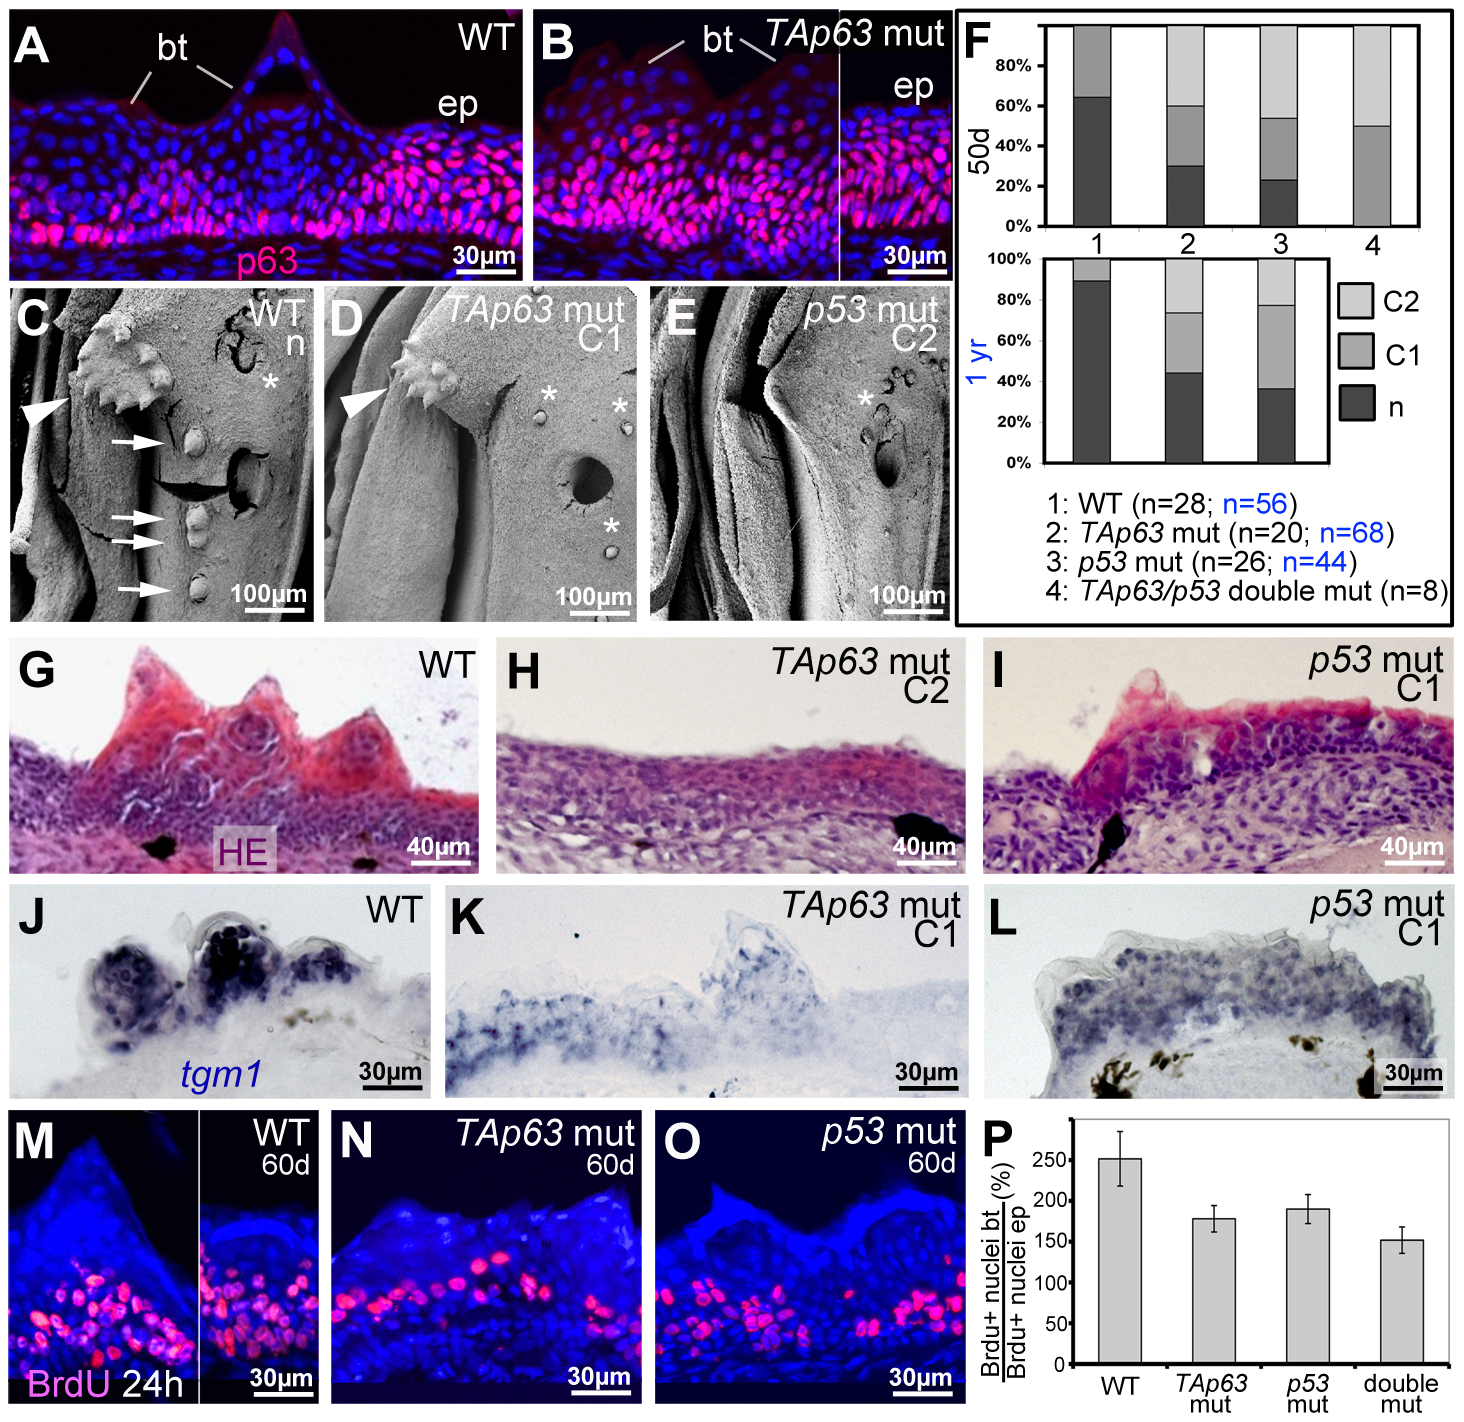 TAp63 and p53 mutants display reduced proliferation in basal layers and reduced differentiation in upper layers of tubercle remnants.